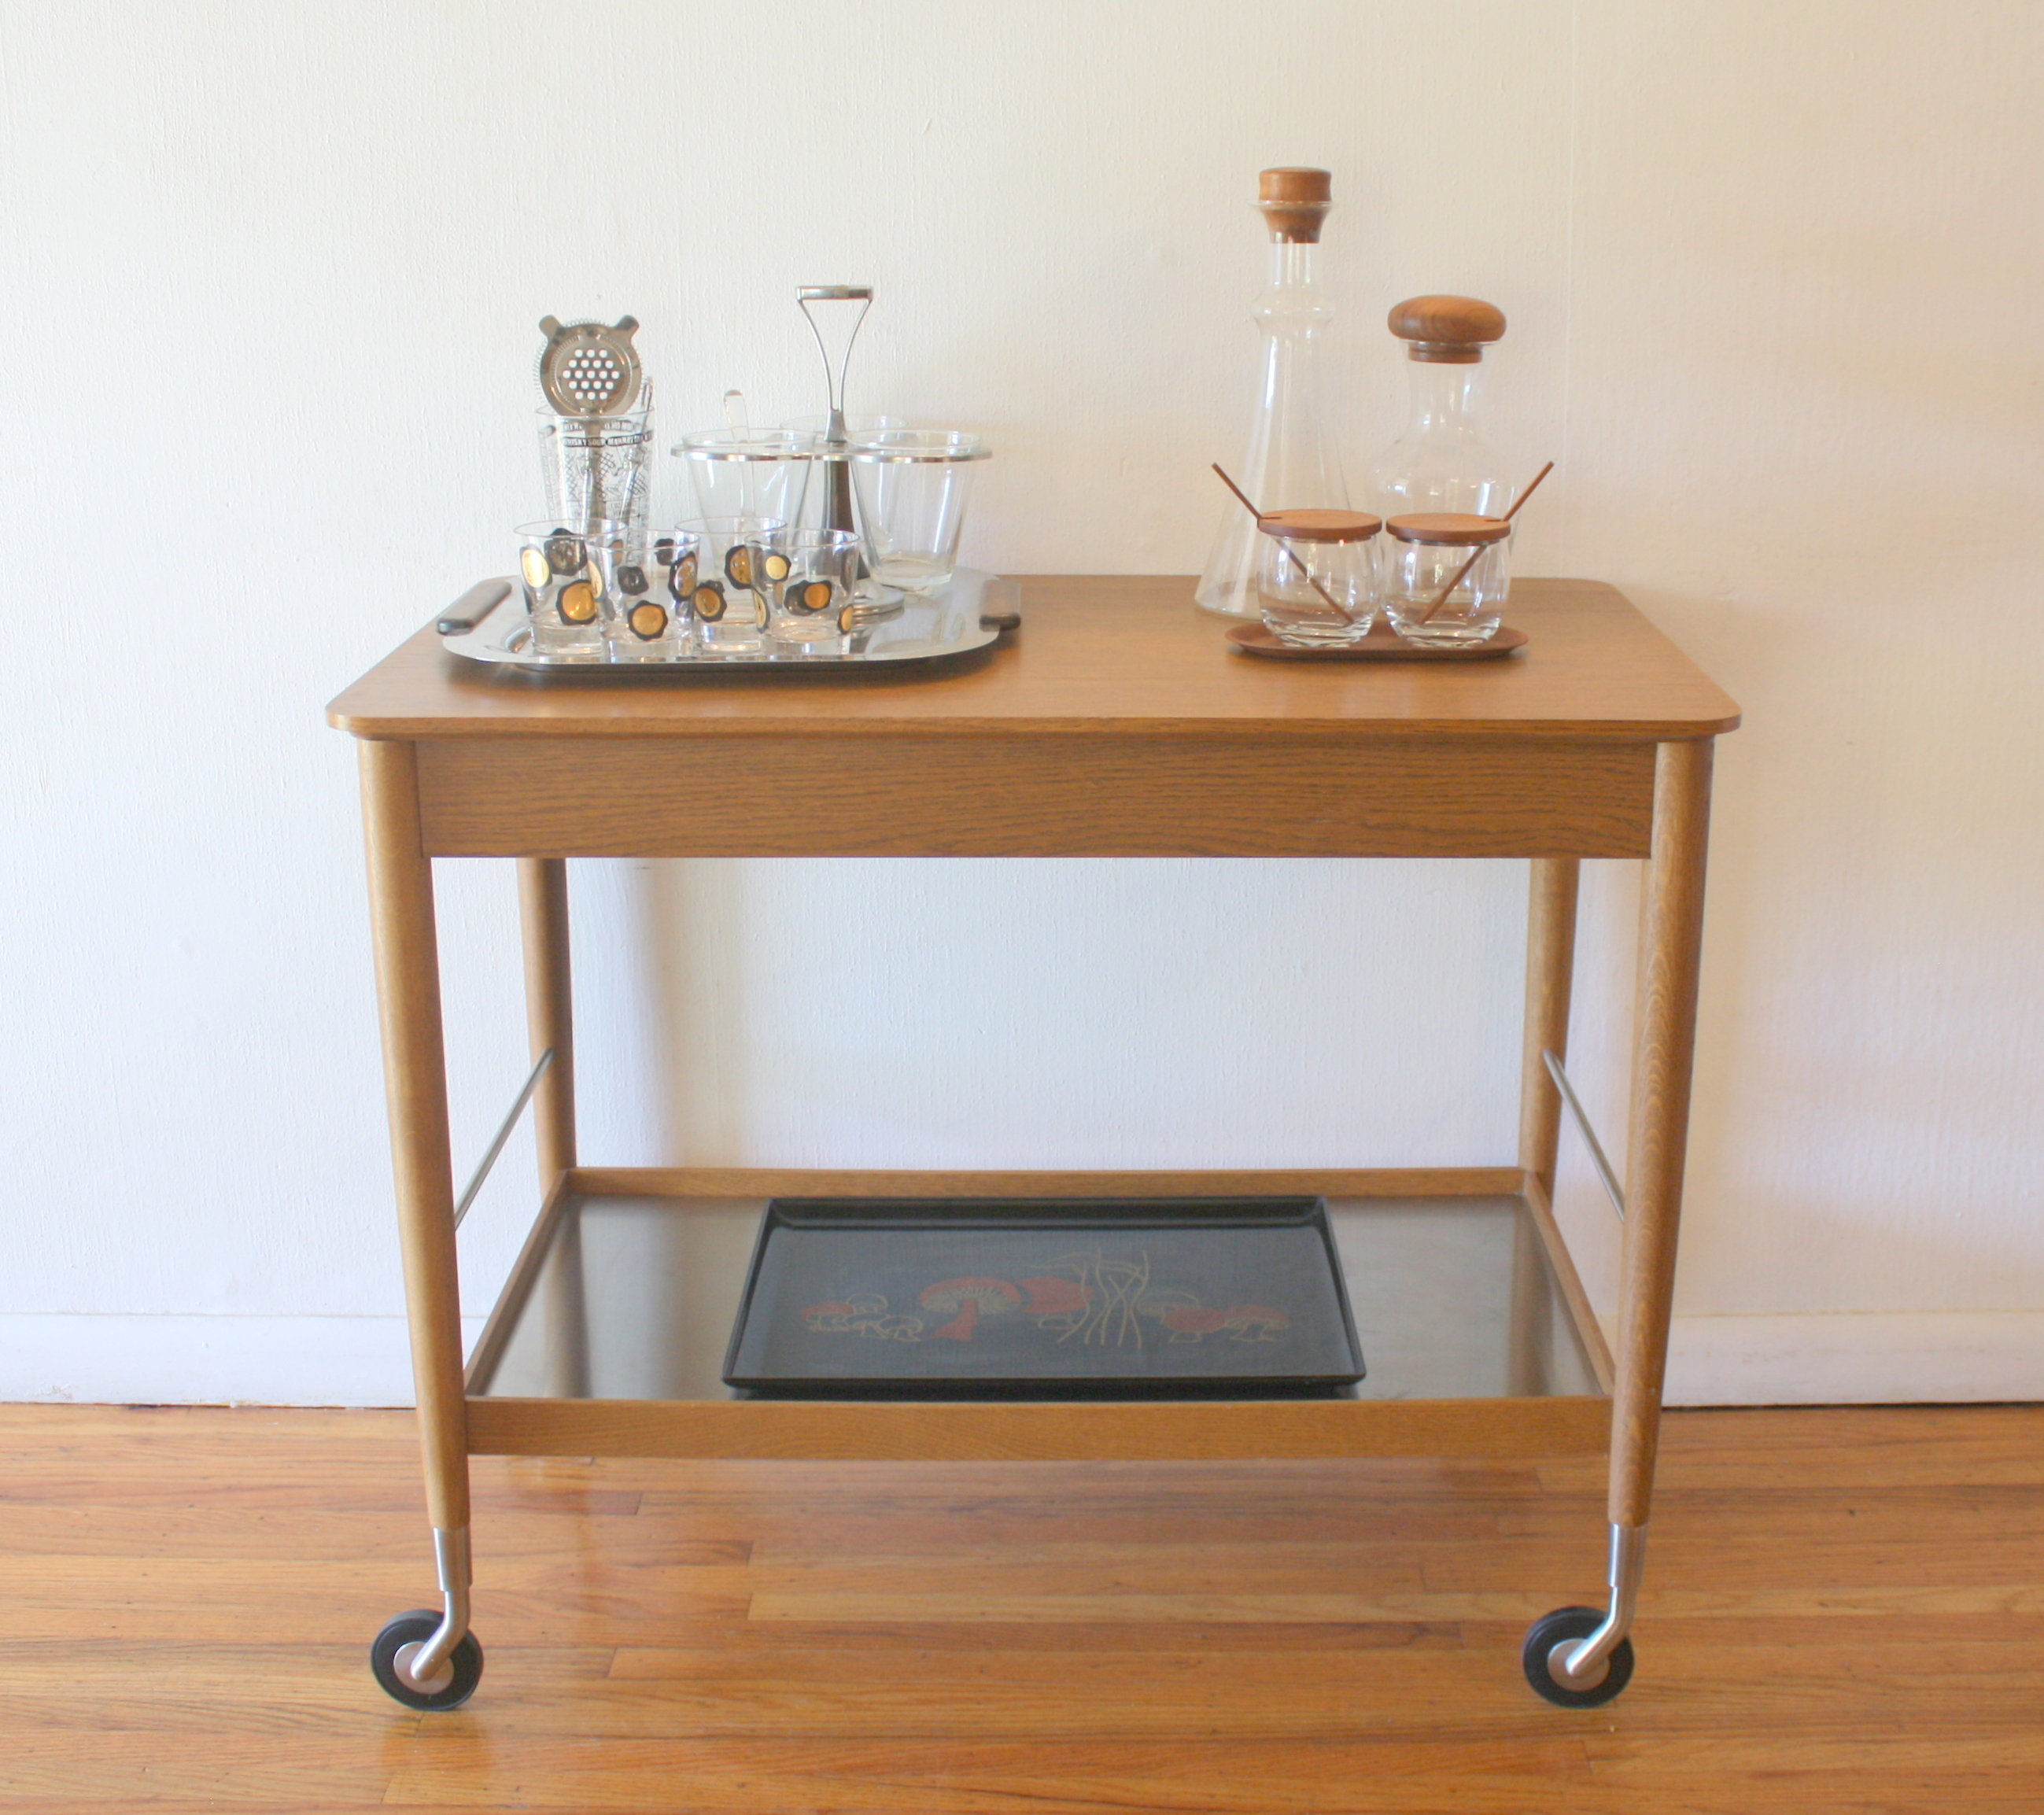 mcm stainless shelf bar serving cart 1